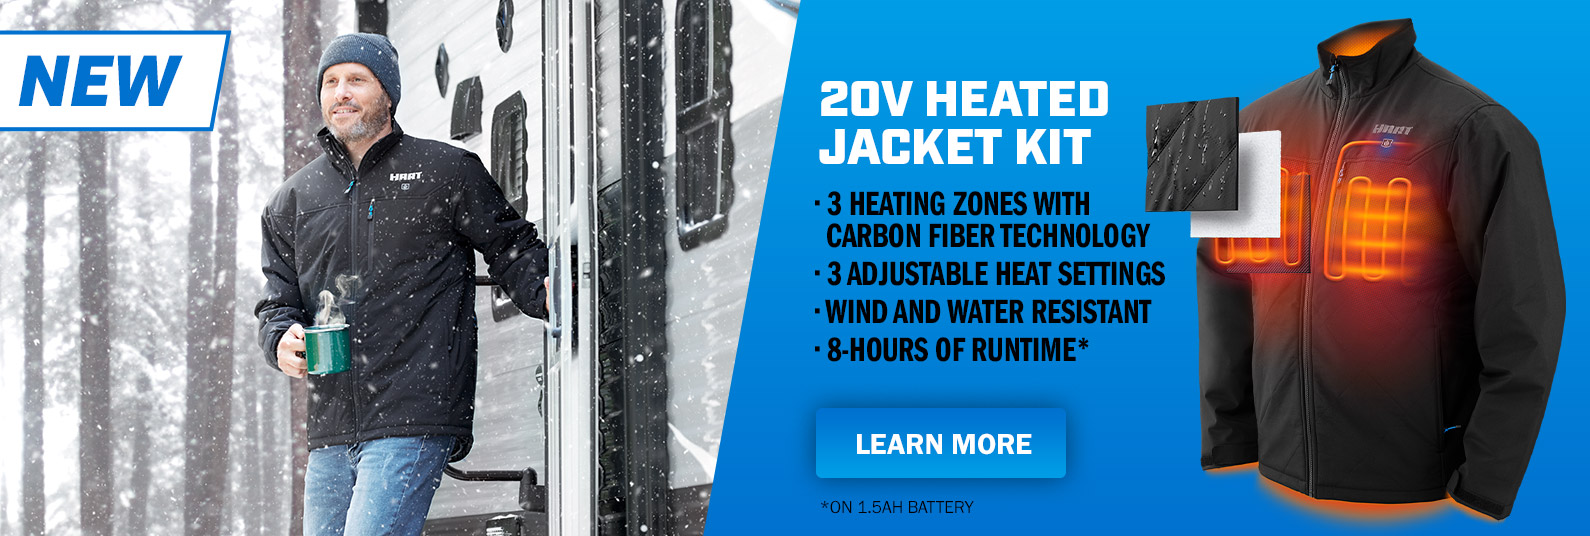 NEW! Hart Tools Heated Jackets Only at Walmart